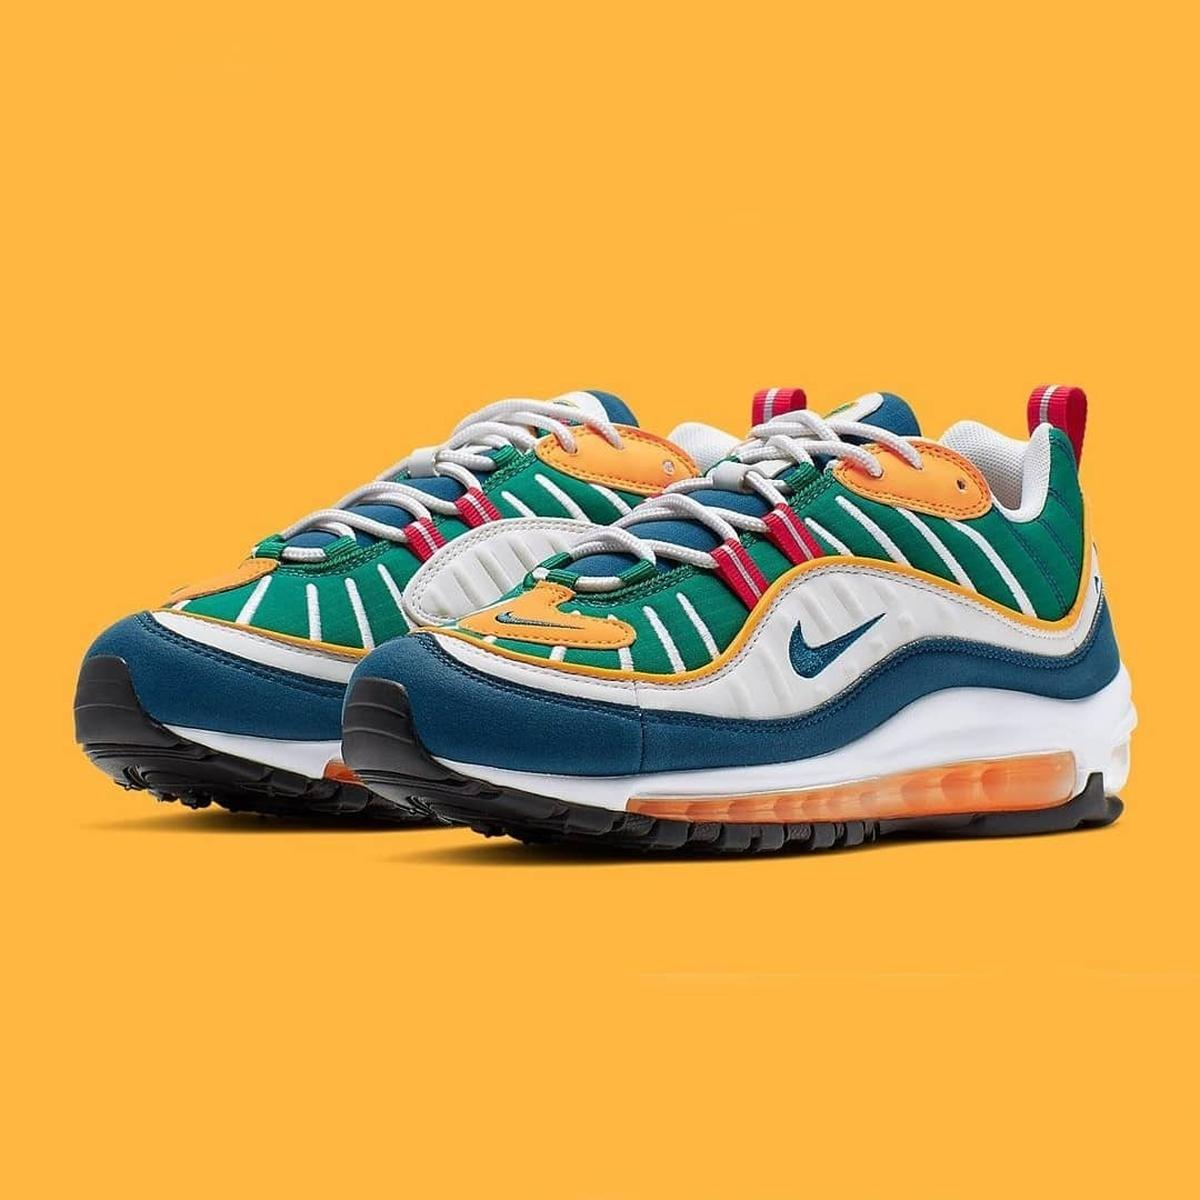 Nike Air Max 98 Dames Ah6799 601 7